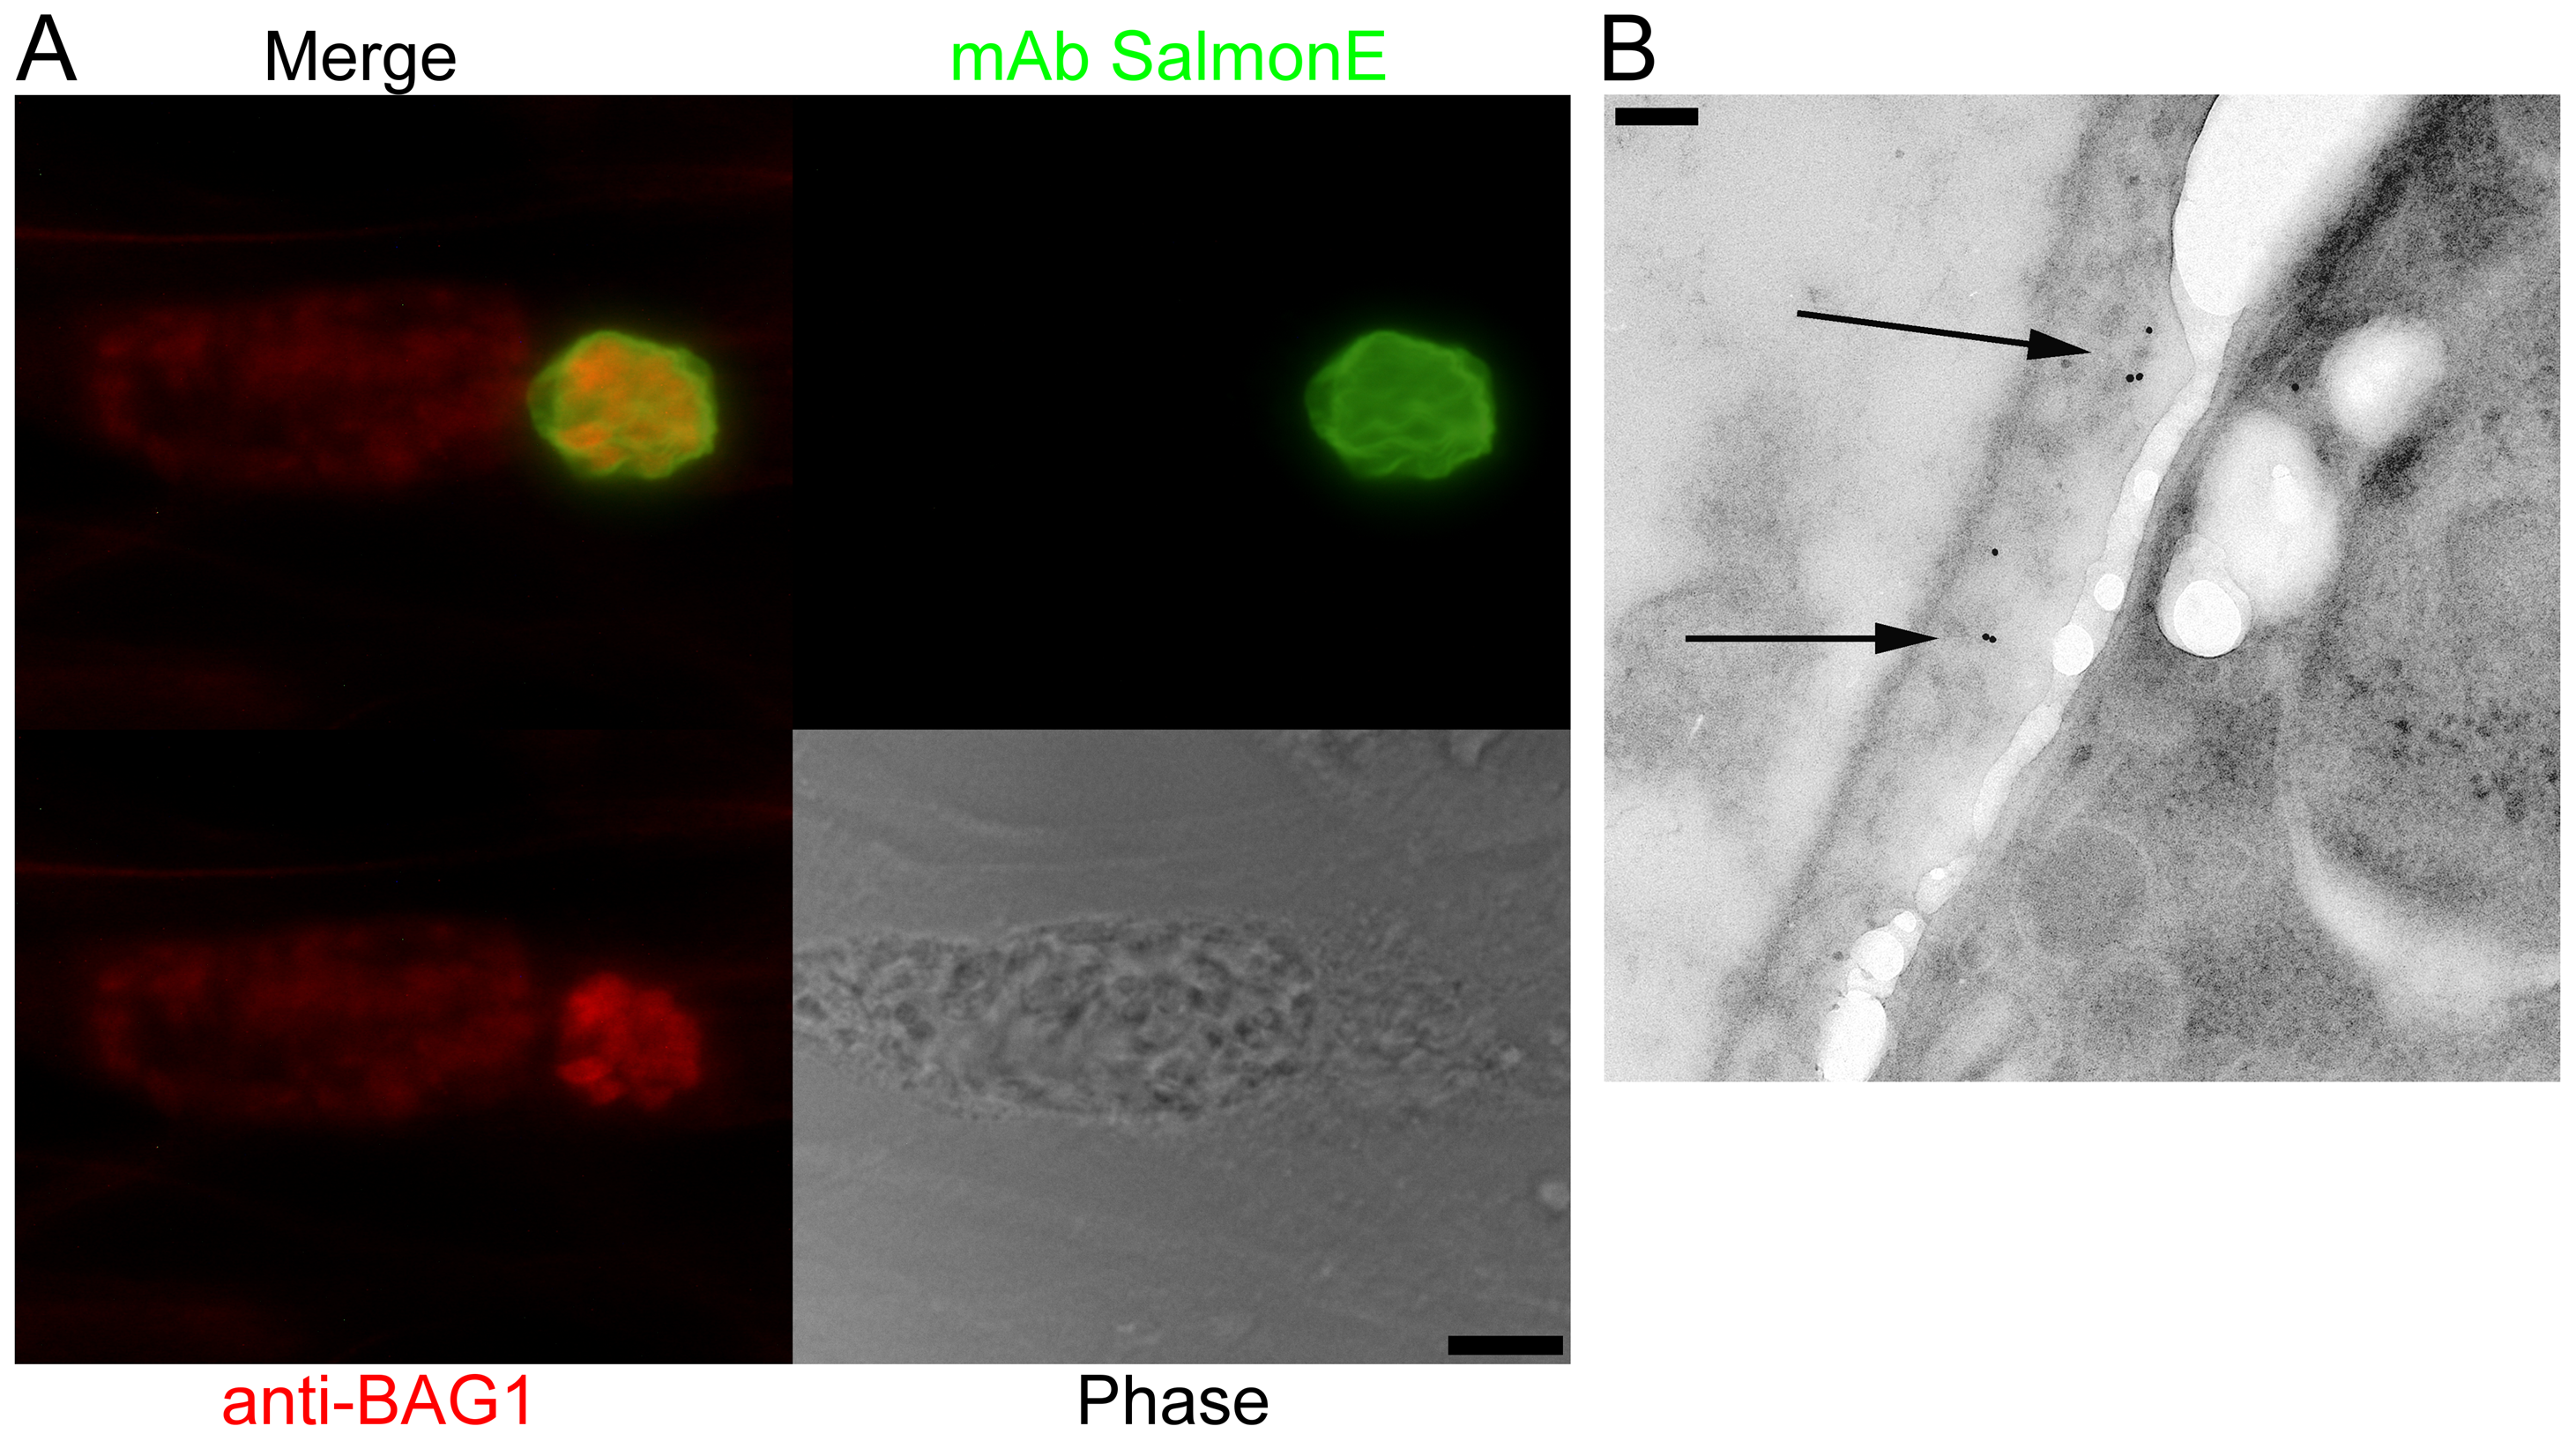 Monoclonal antibody SalmonE binds to the cyst wall of cysts isolated <i>in vitro</i> and <i>in vivo</i>.